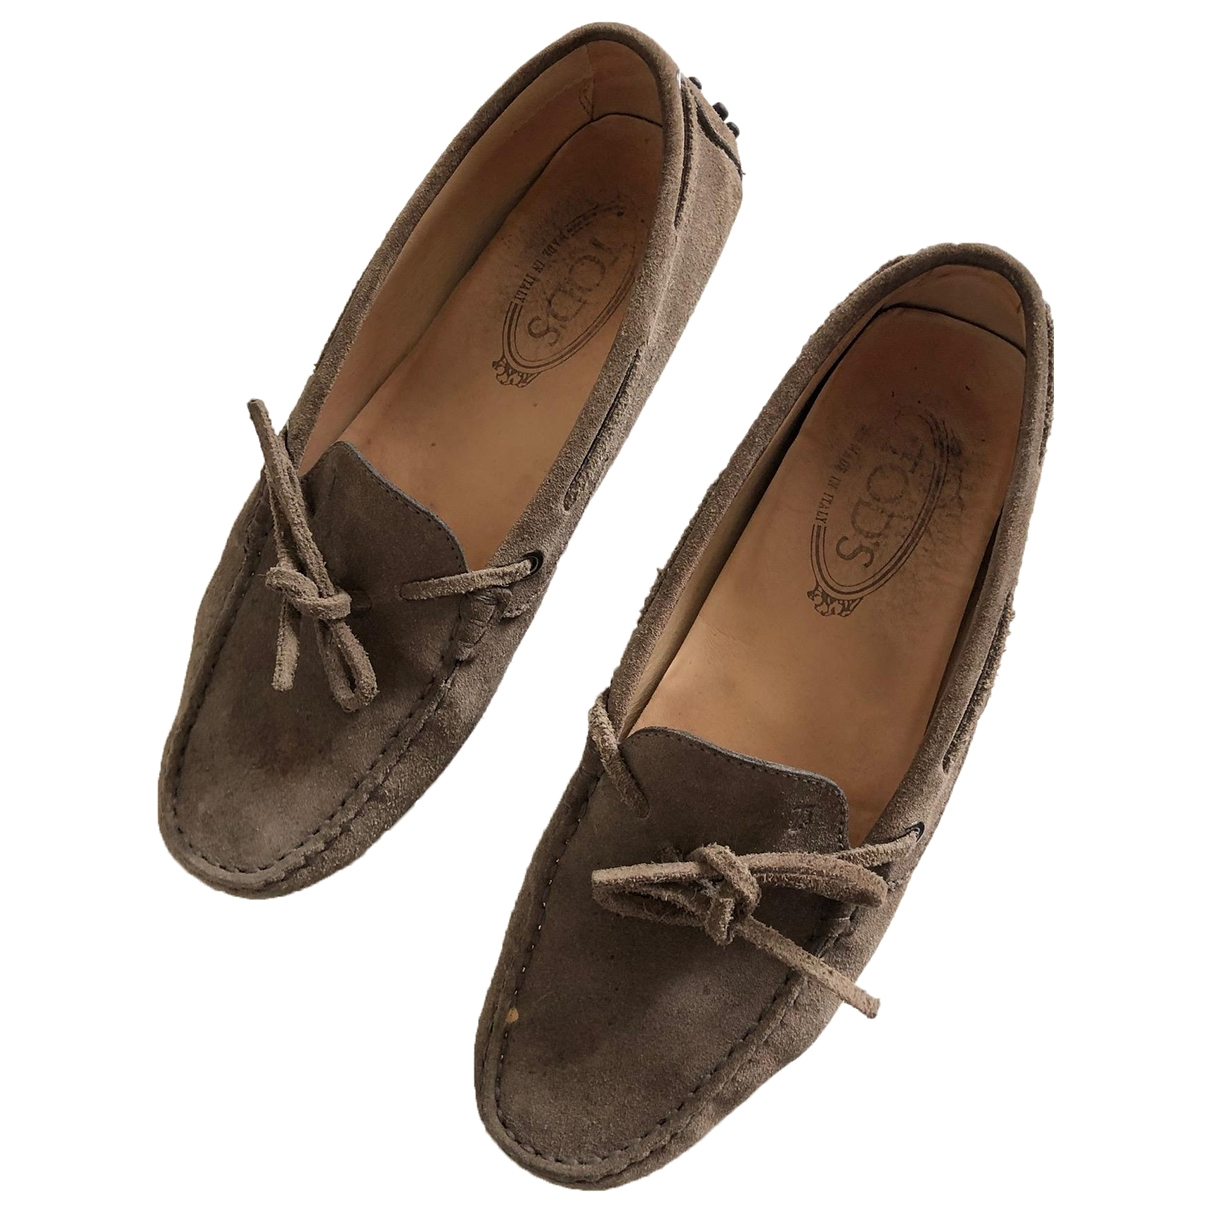 Tod's \N Beige Leather Mules & Clogs for Women 40 EU